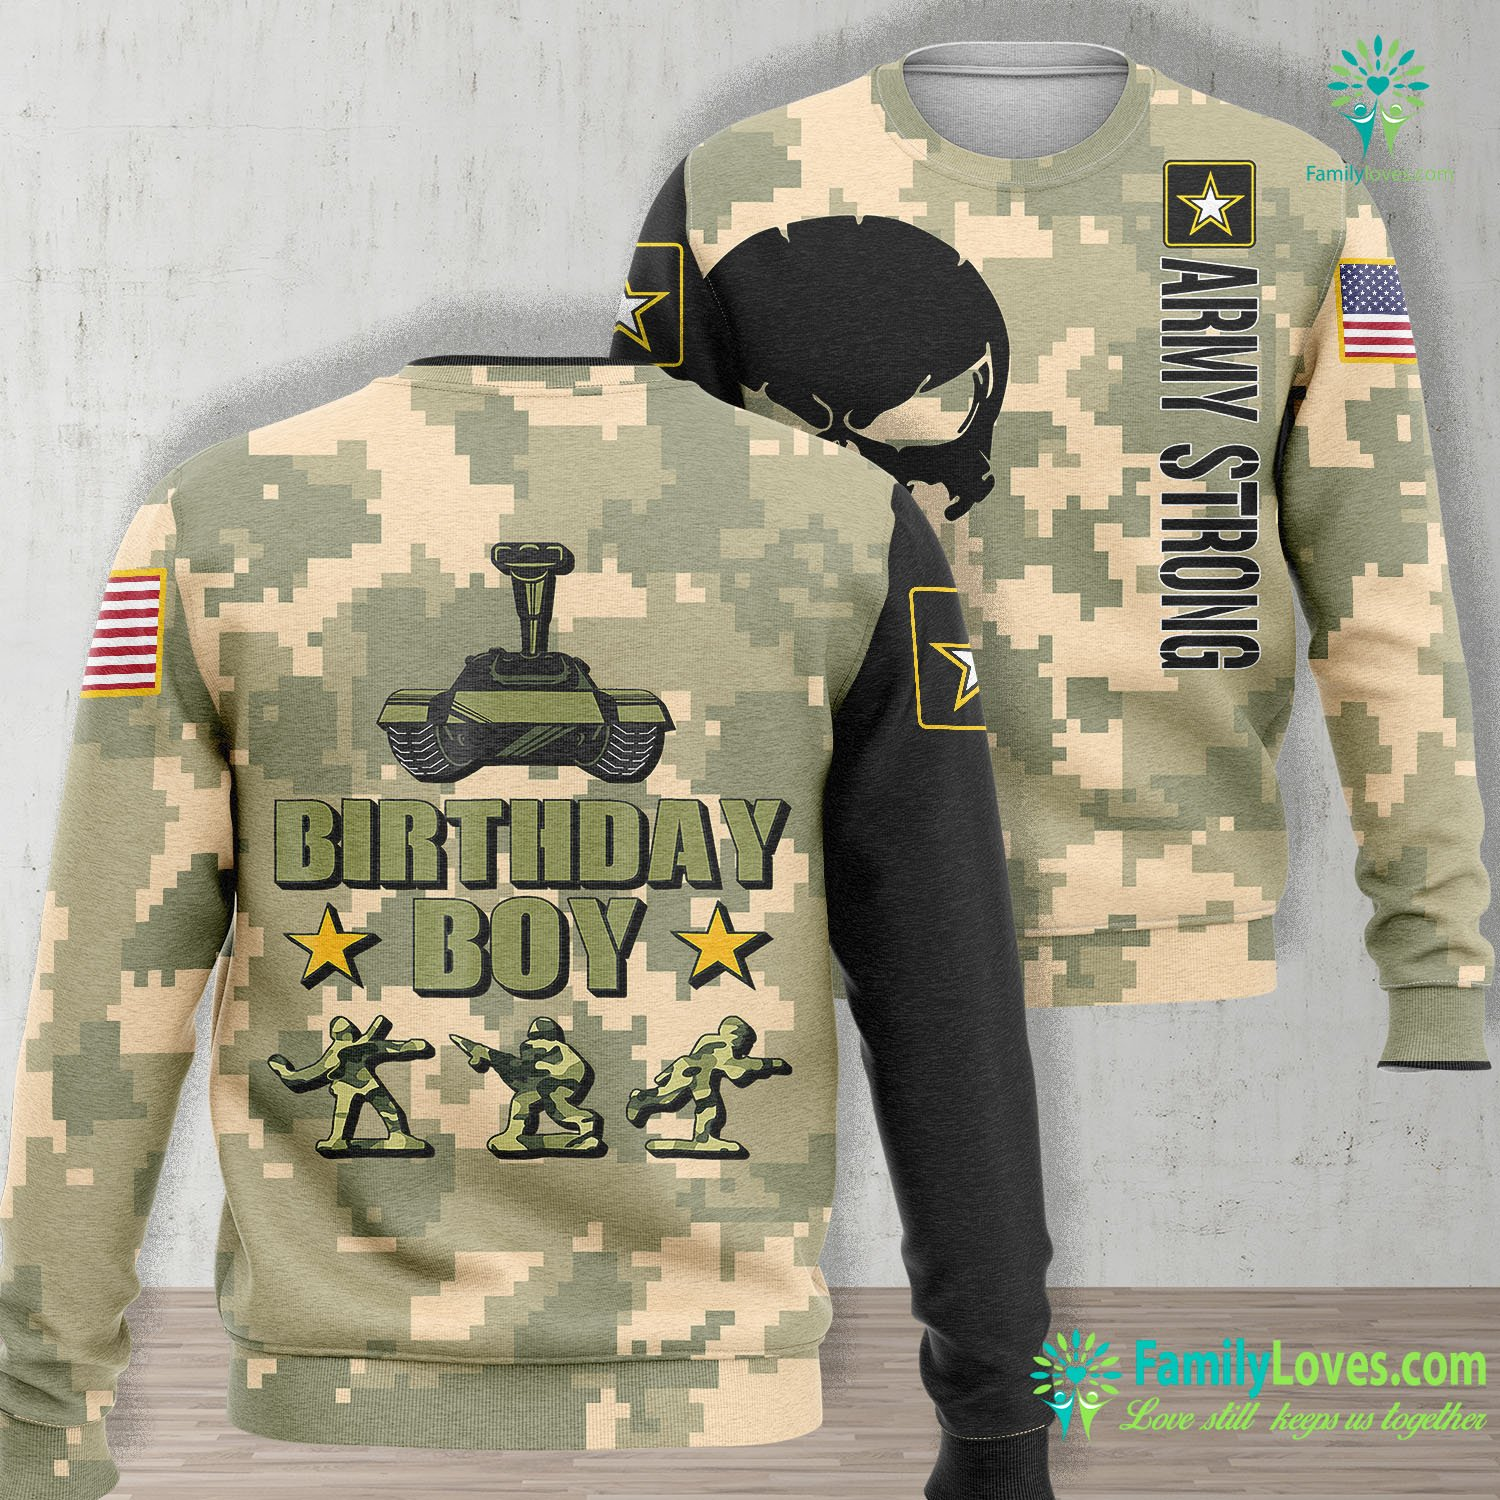 Military Gift Love My Soldier Birthday Boy Army Party Military Party Supplies Camo Green Boys Birthday Party Military Party,Military Tee